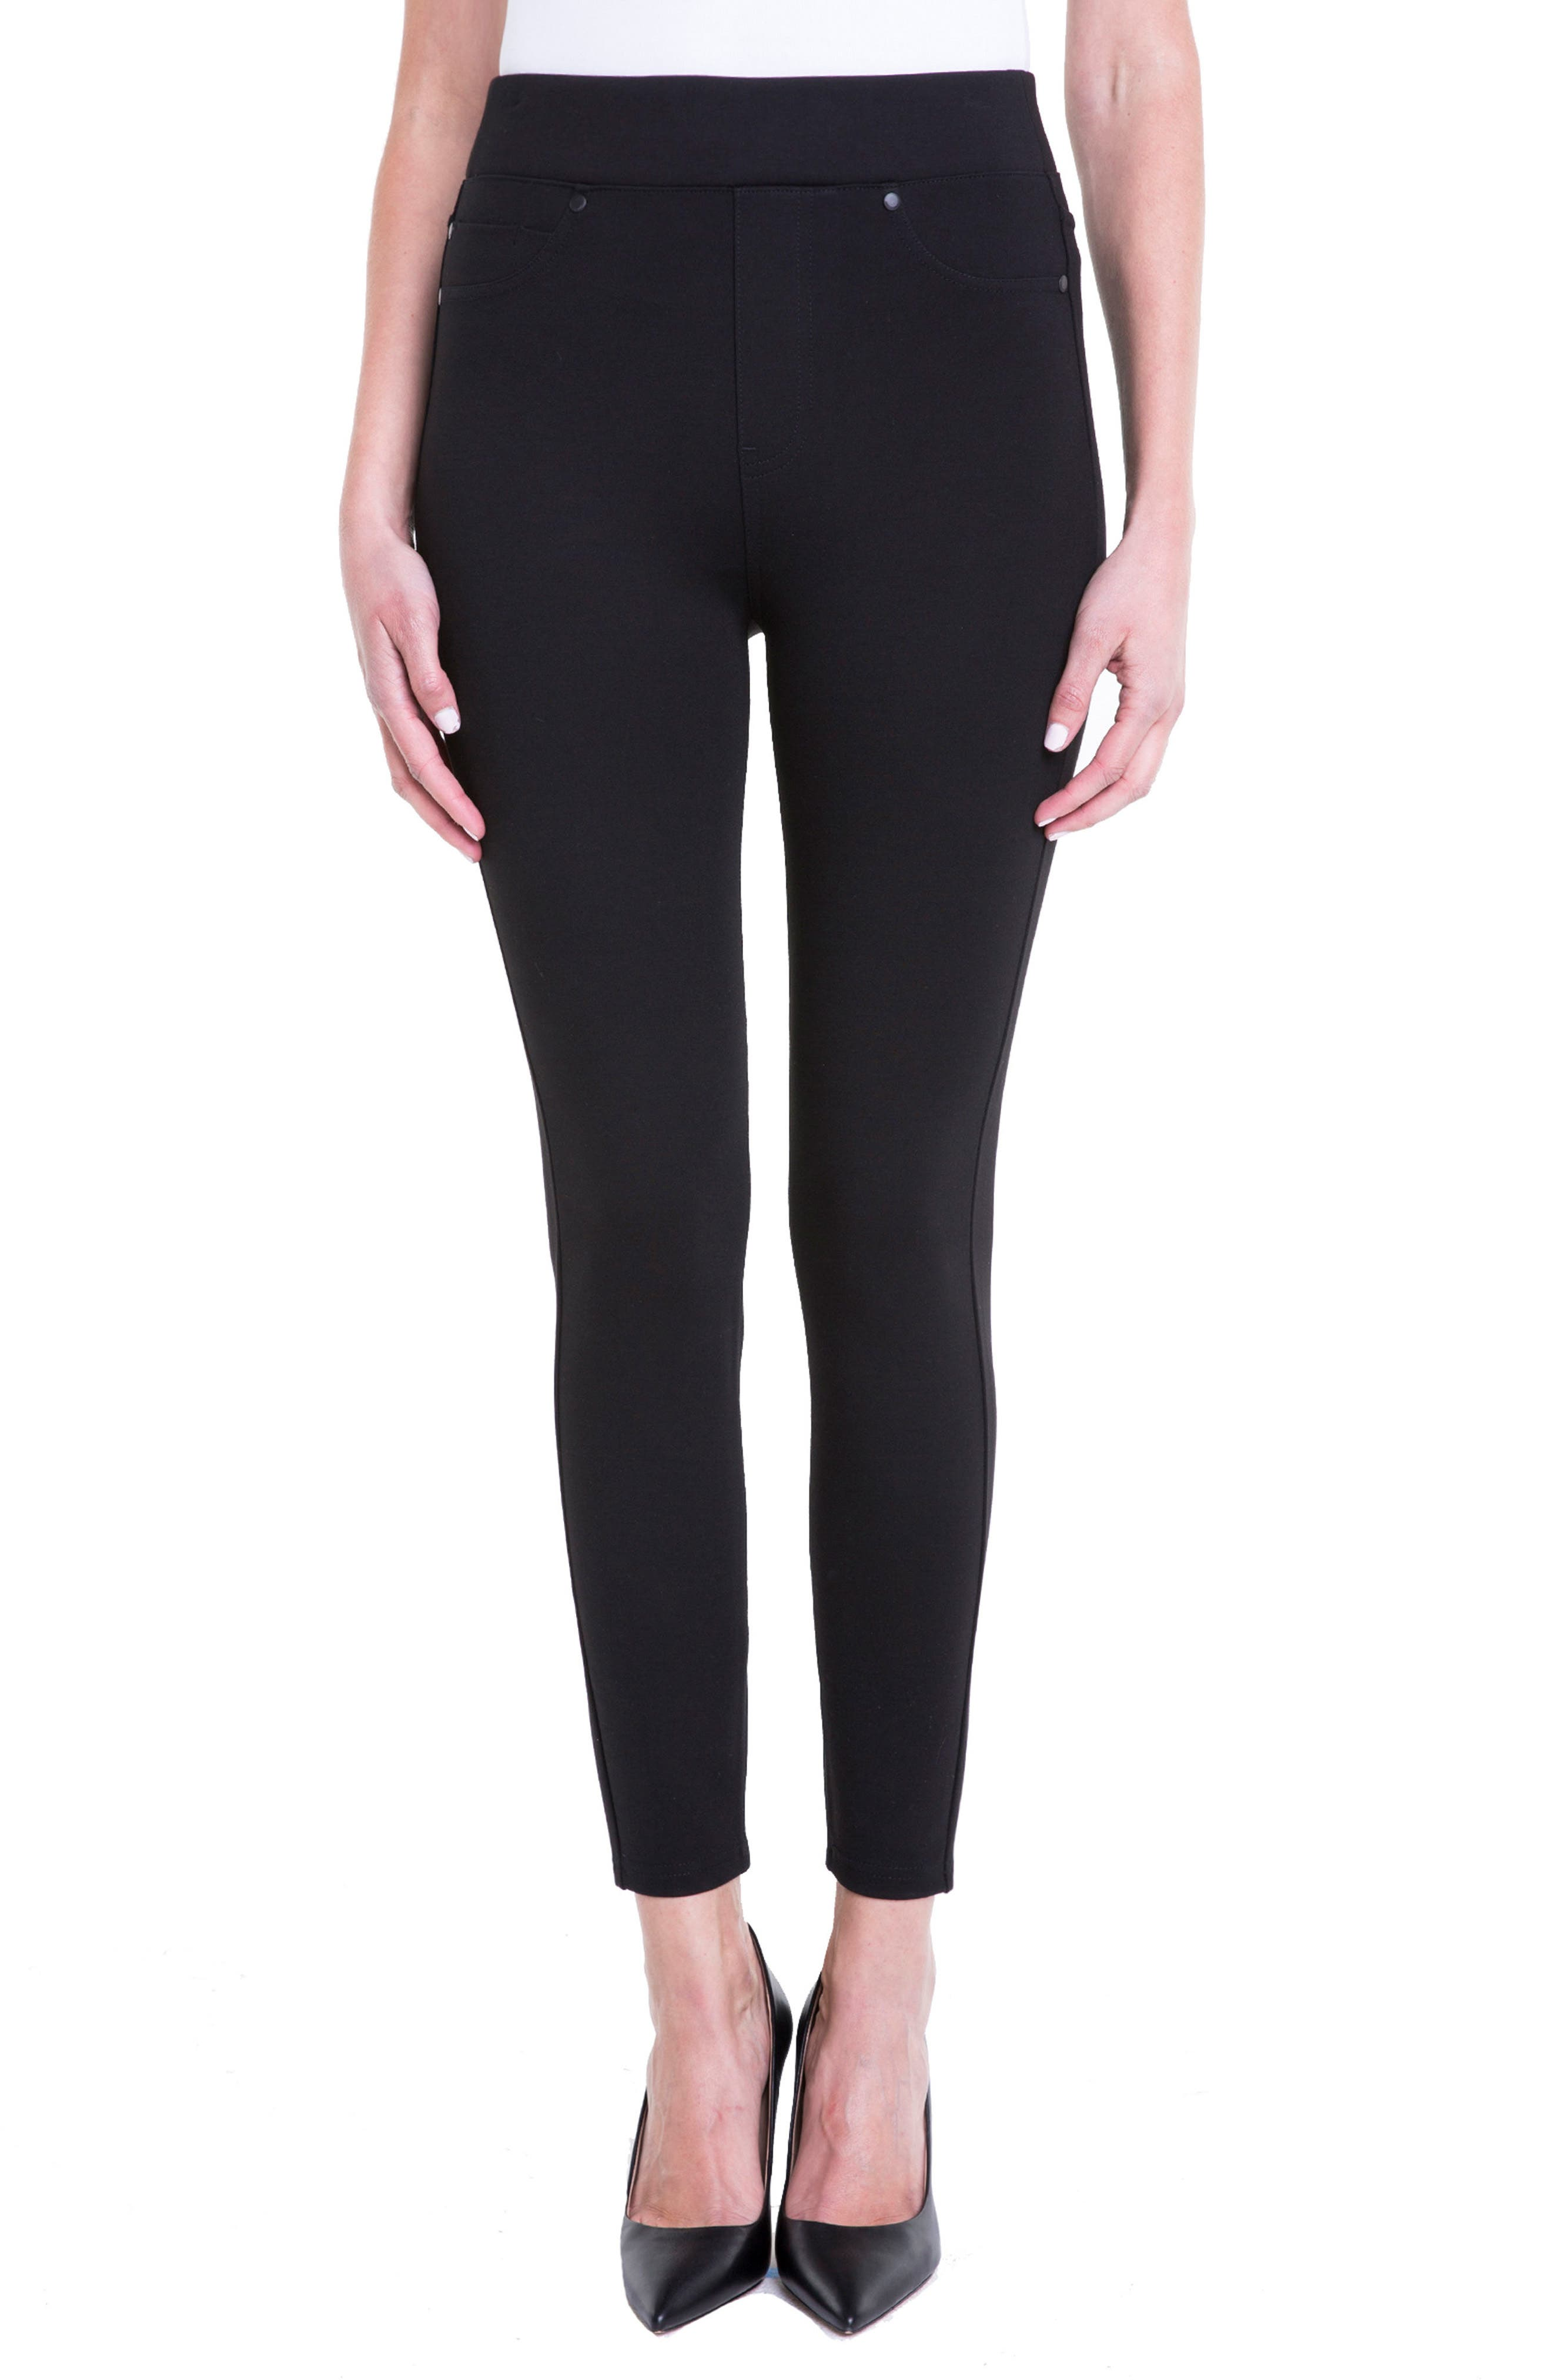 Main Image - Liverpool Jeans Company Bridget High Waist Pull-On Ankle Leggings